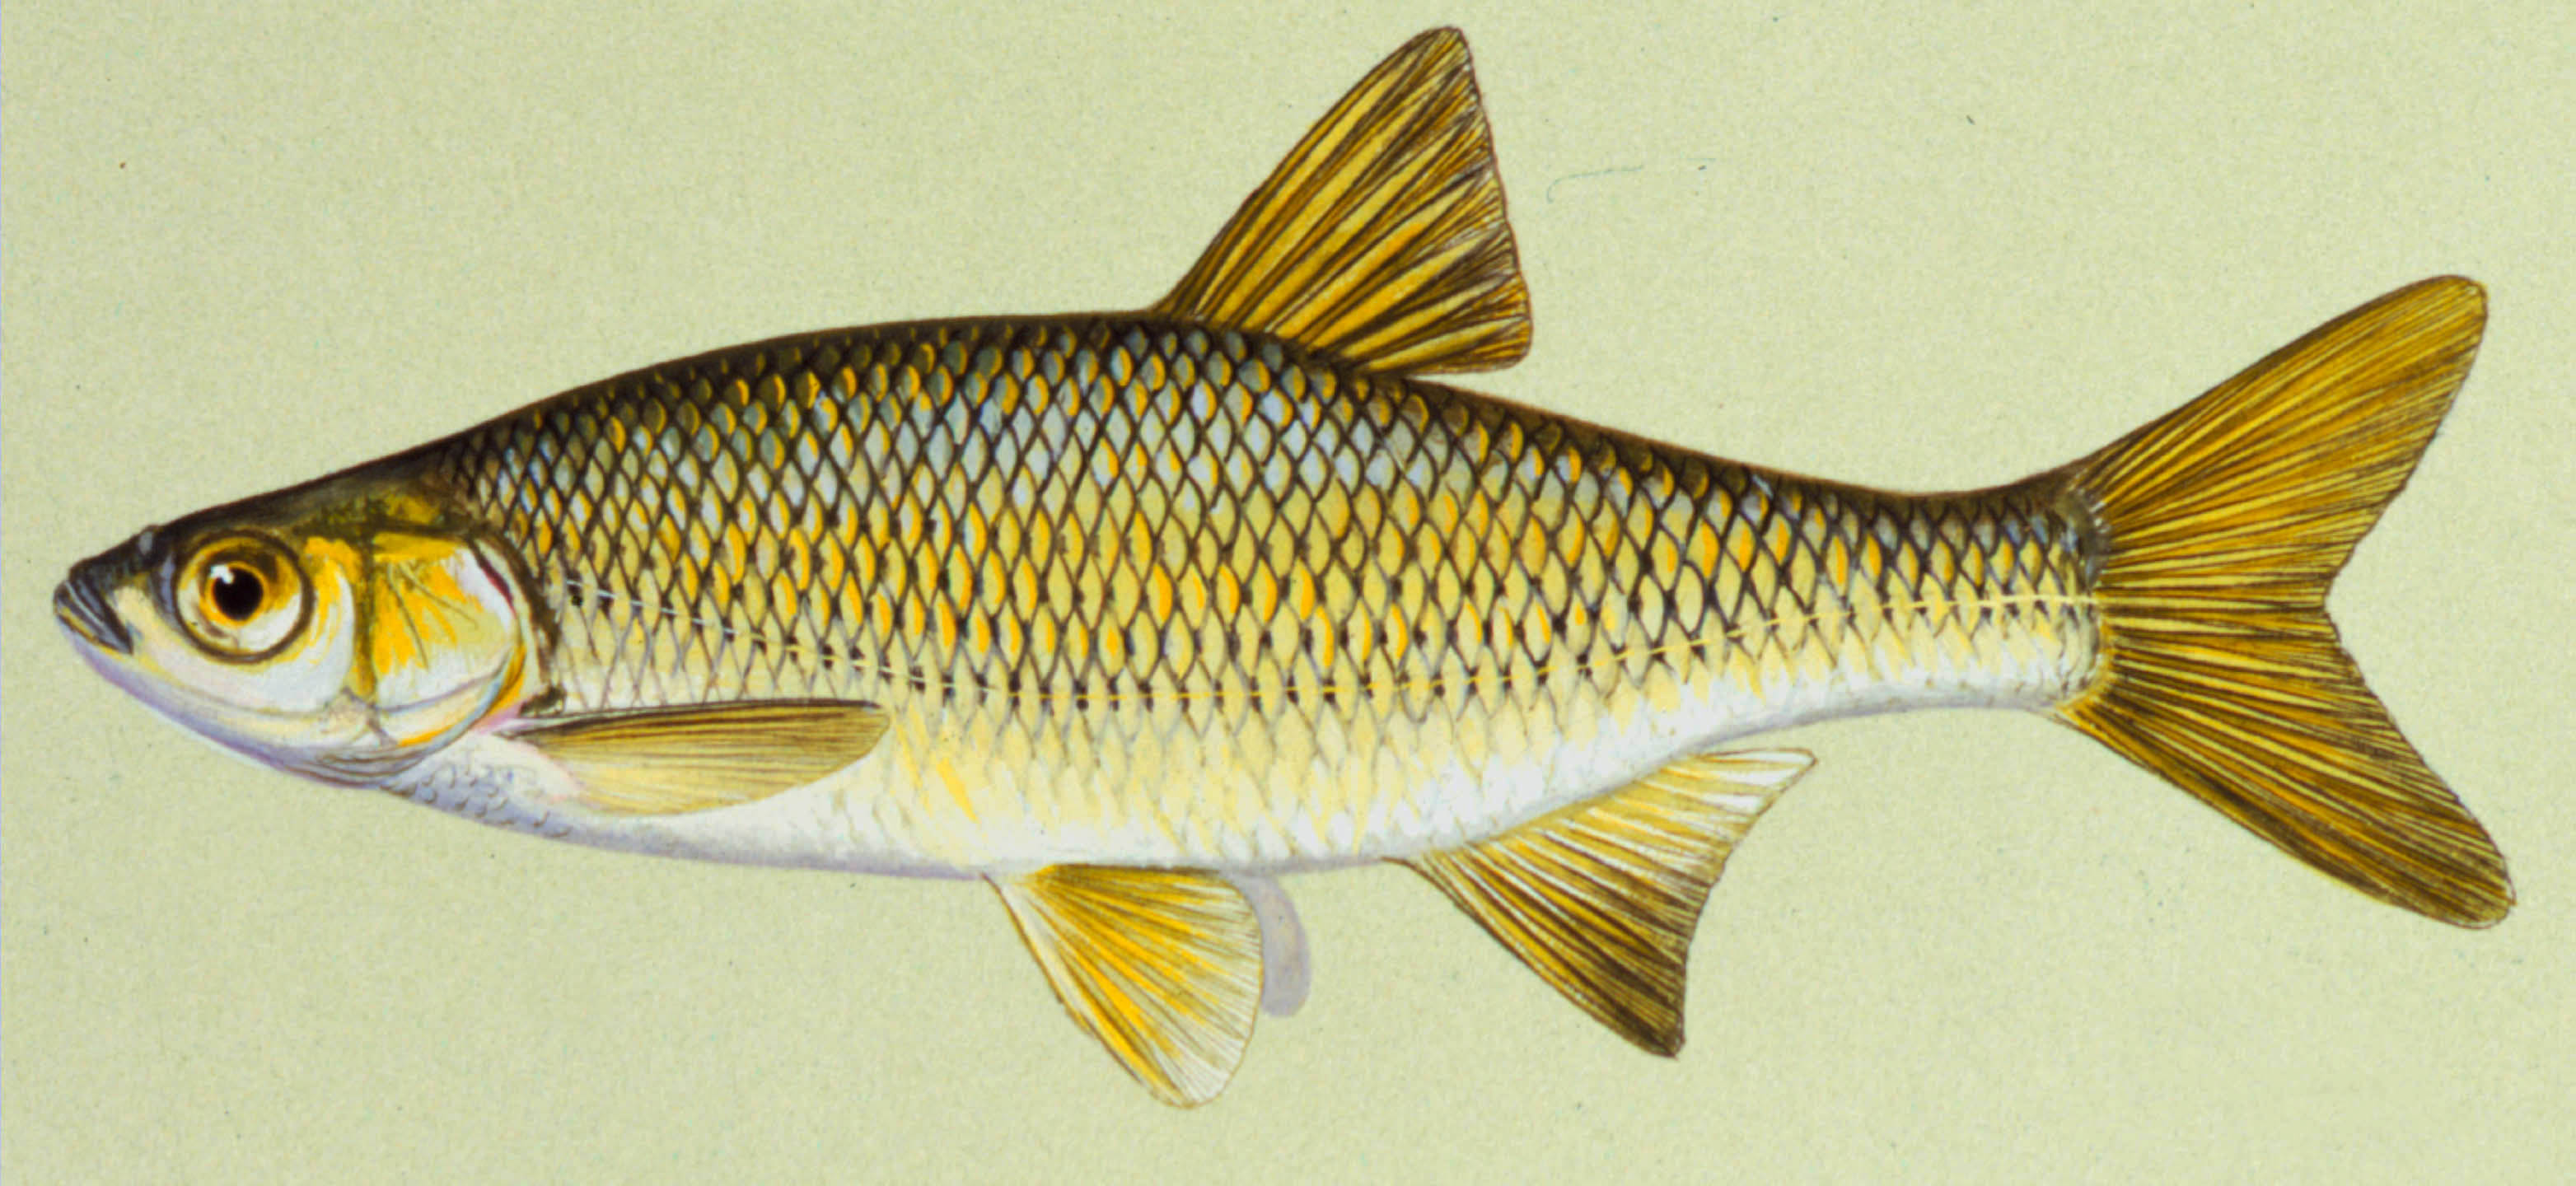 Golden Shiner, illustration by Maynard Reece, from Iowa Fish and Fishing.